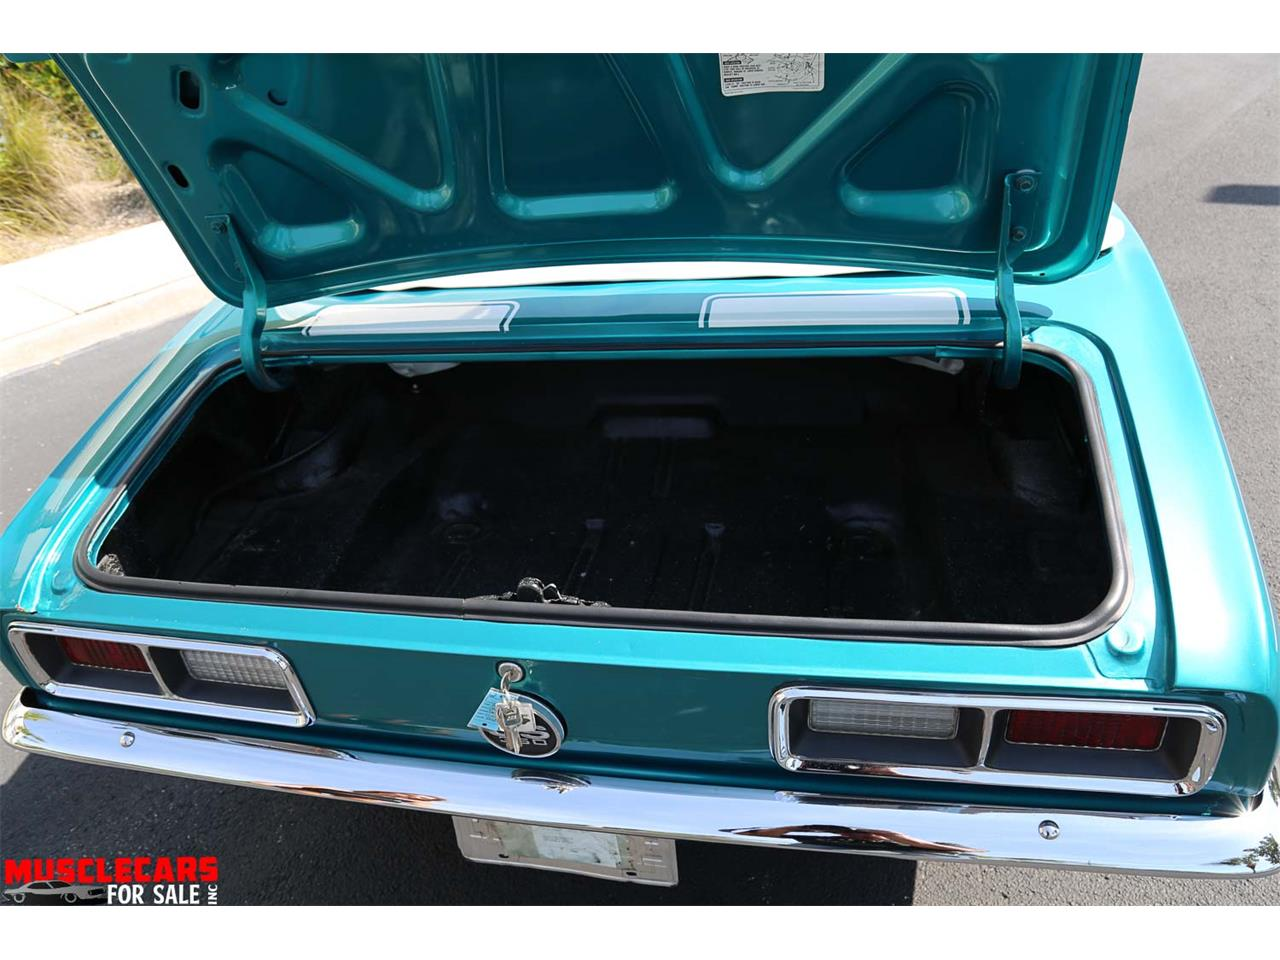 Large Picture of '68 Camaro SS - $37,500.00 Offered by Muscle Cars For Sale Inc. - PNWZ